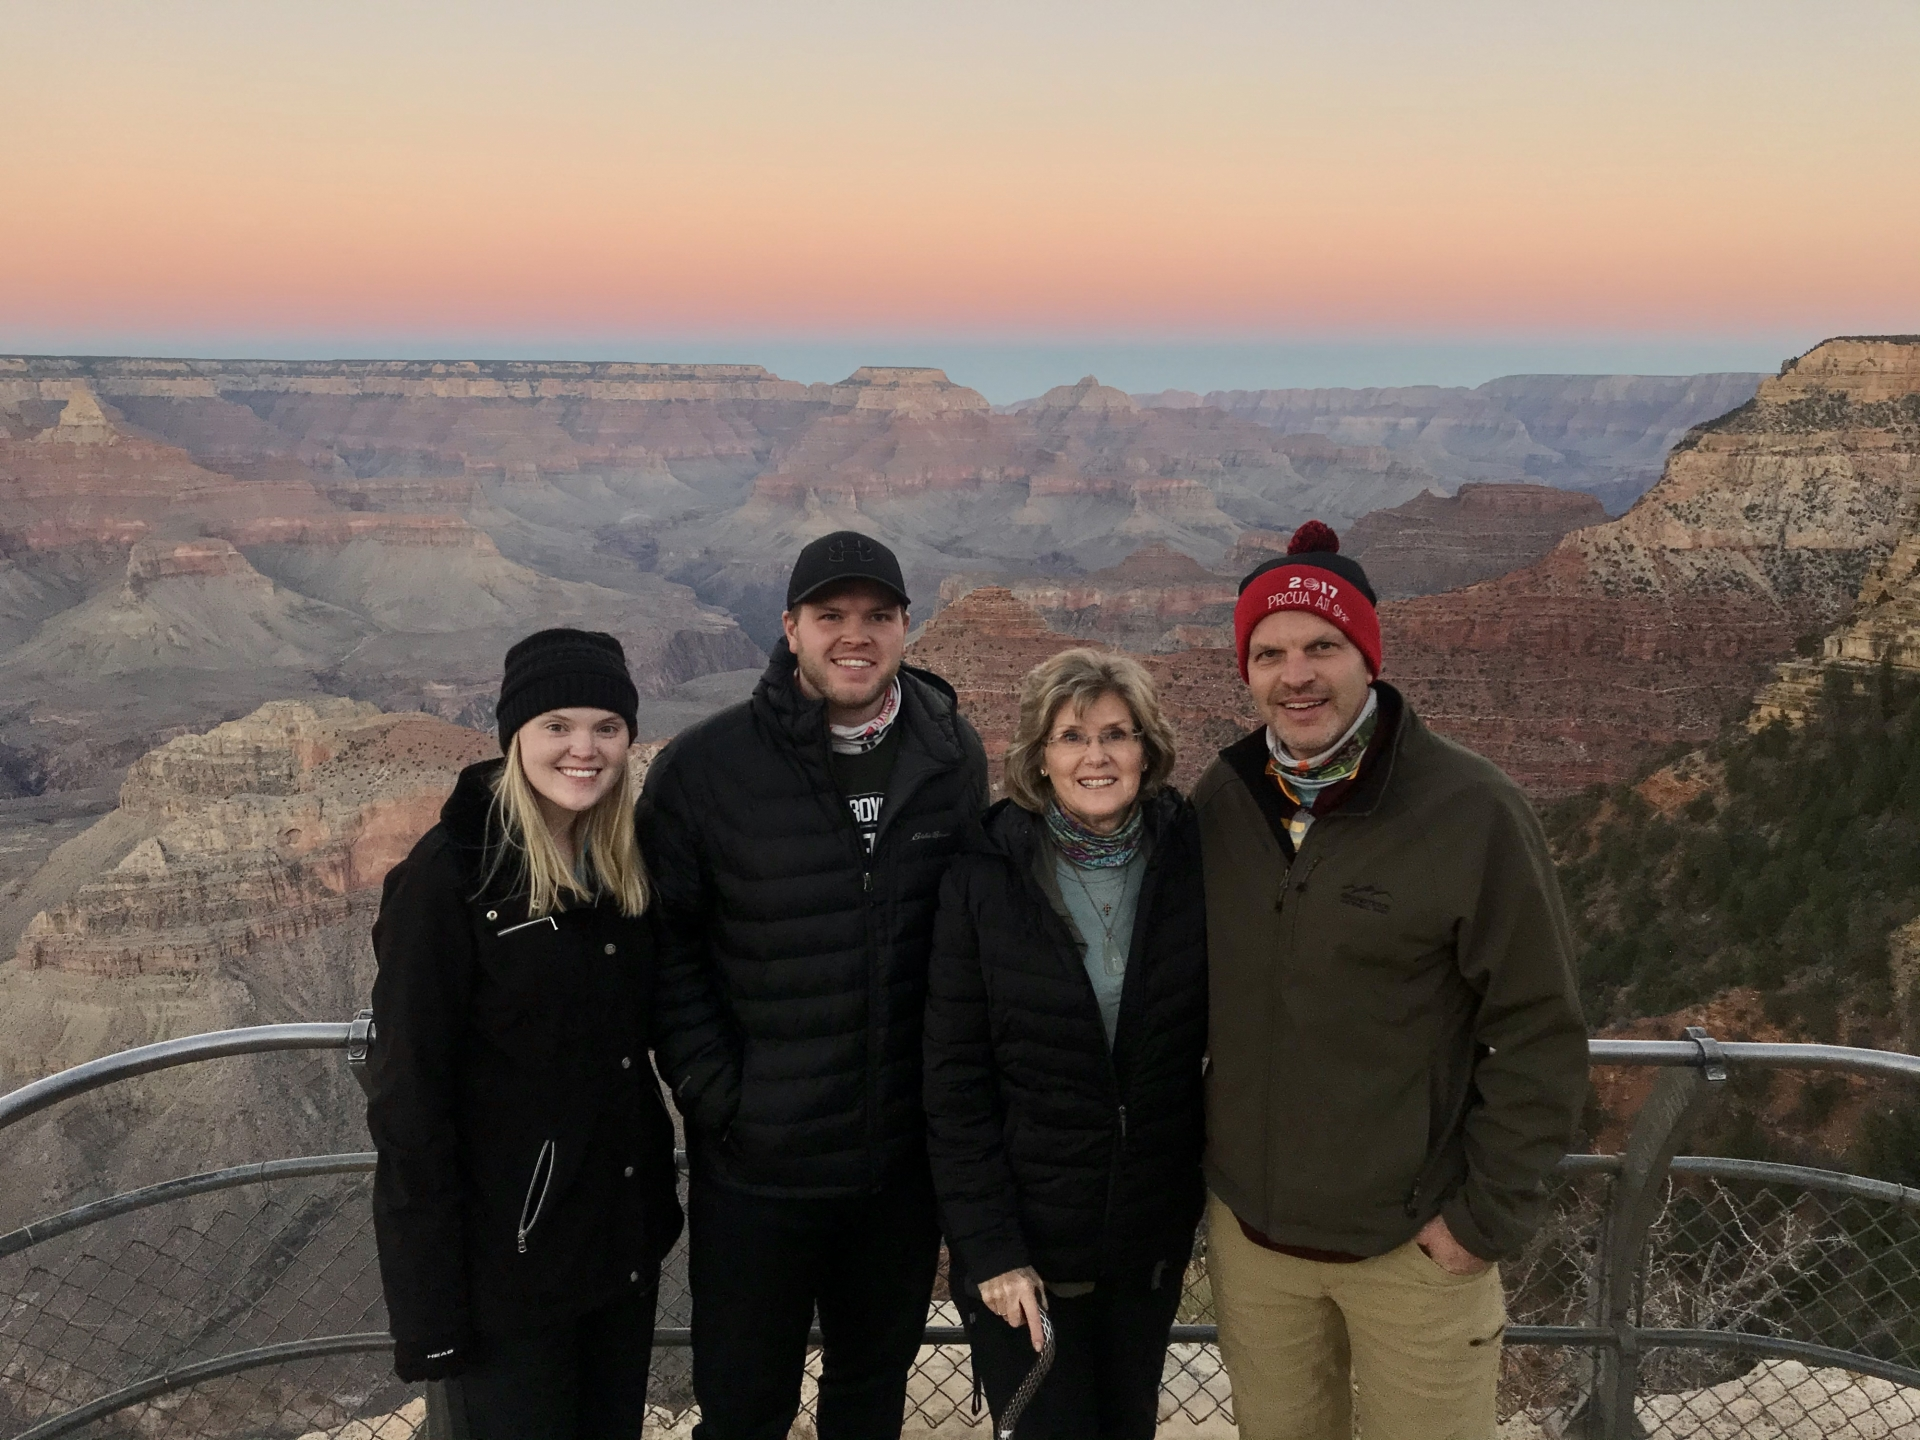 Sunset at Grand Canyon 2020